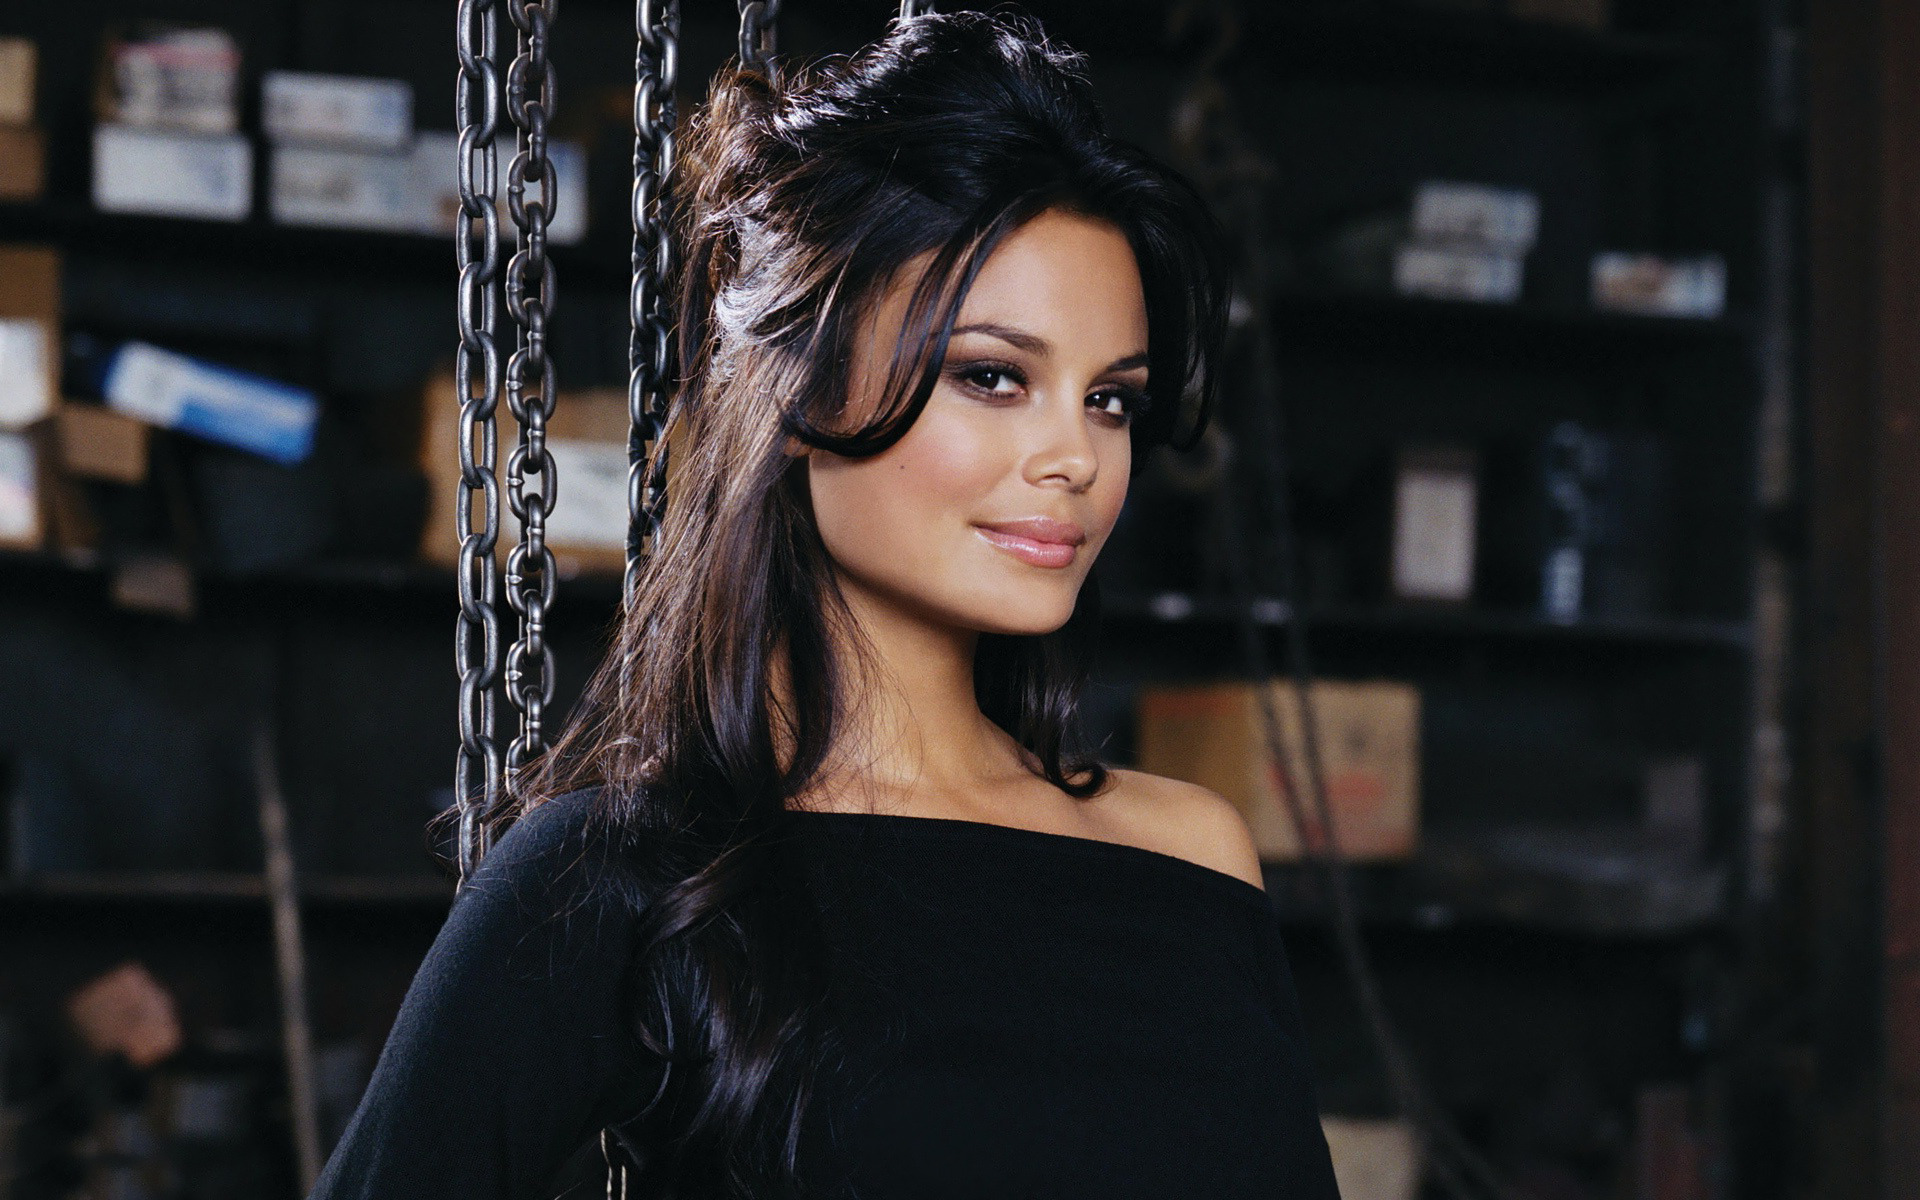 Fast And Furious 7 Cars Wallpapers Download Nathalie Kelley Hd Wallpapers For Desktop Download